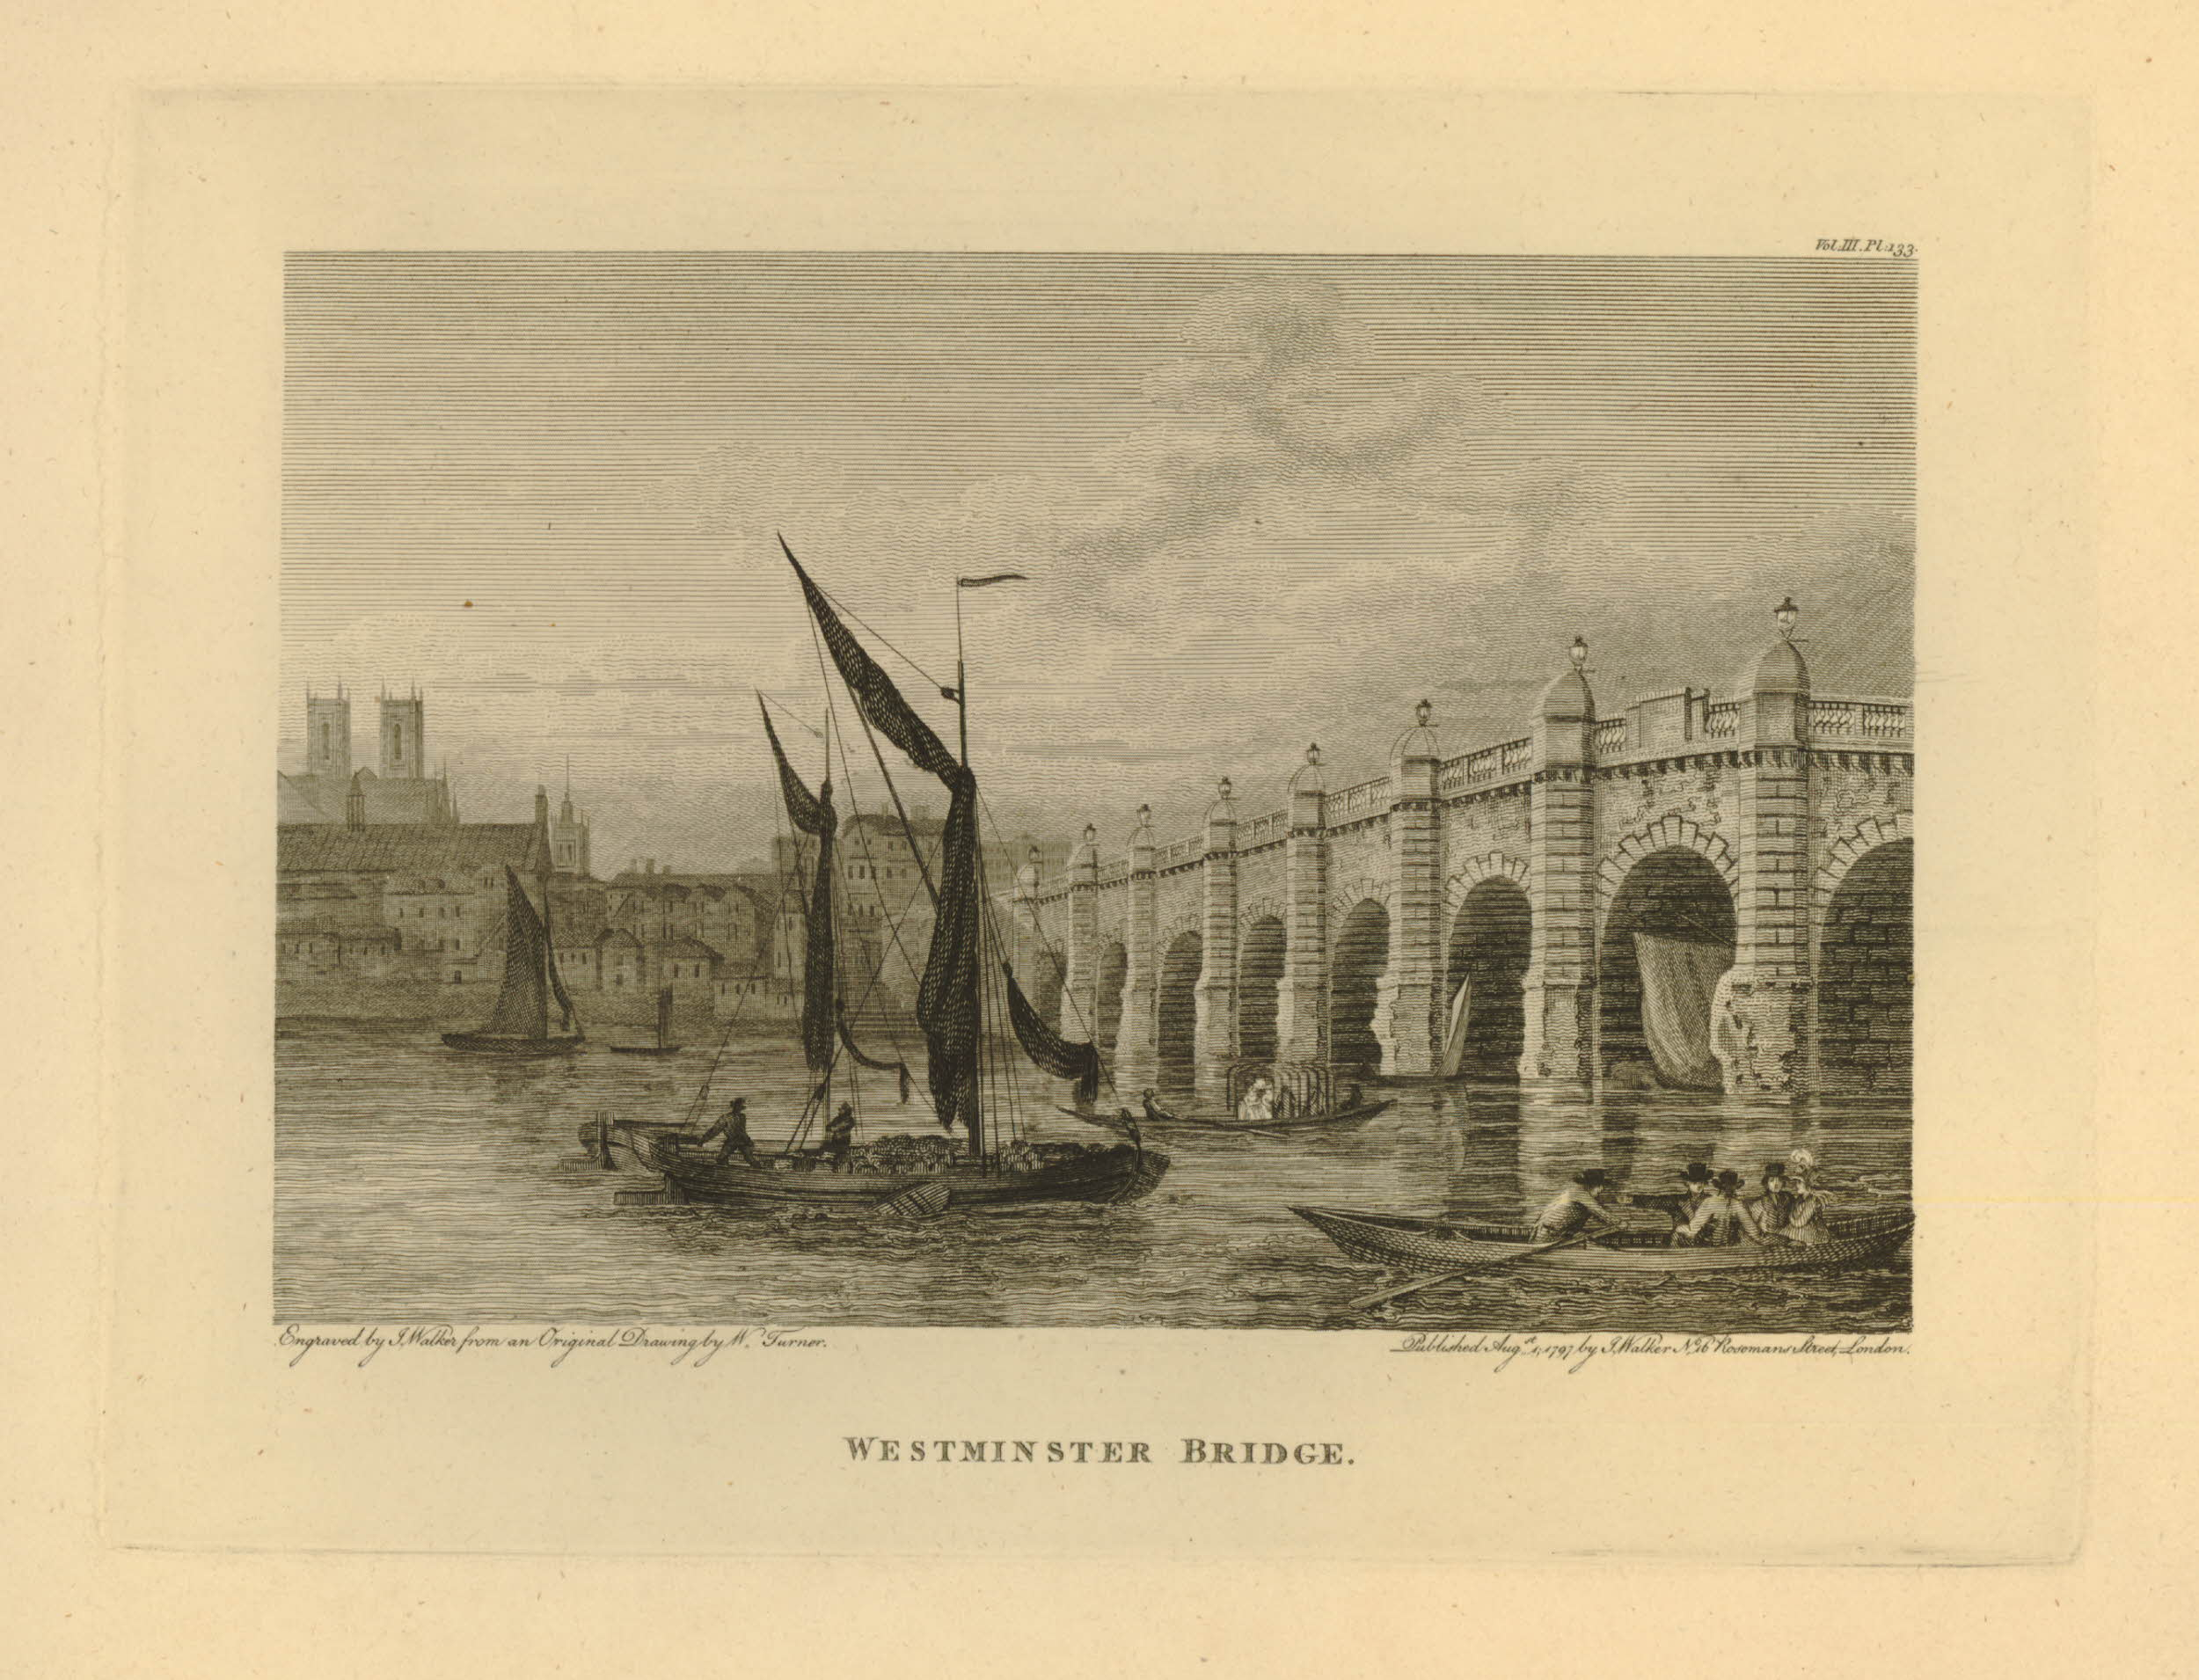 Joseph Mallord William Turner (1775-1851), Westminster Bridge, published London, John Walker (active 1776-1802), 1797, etching and engraving